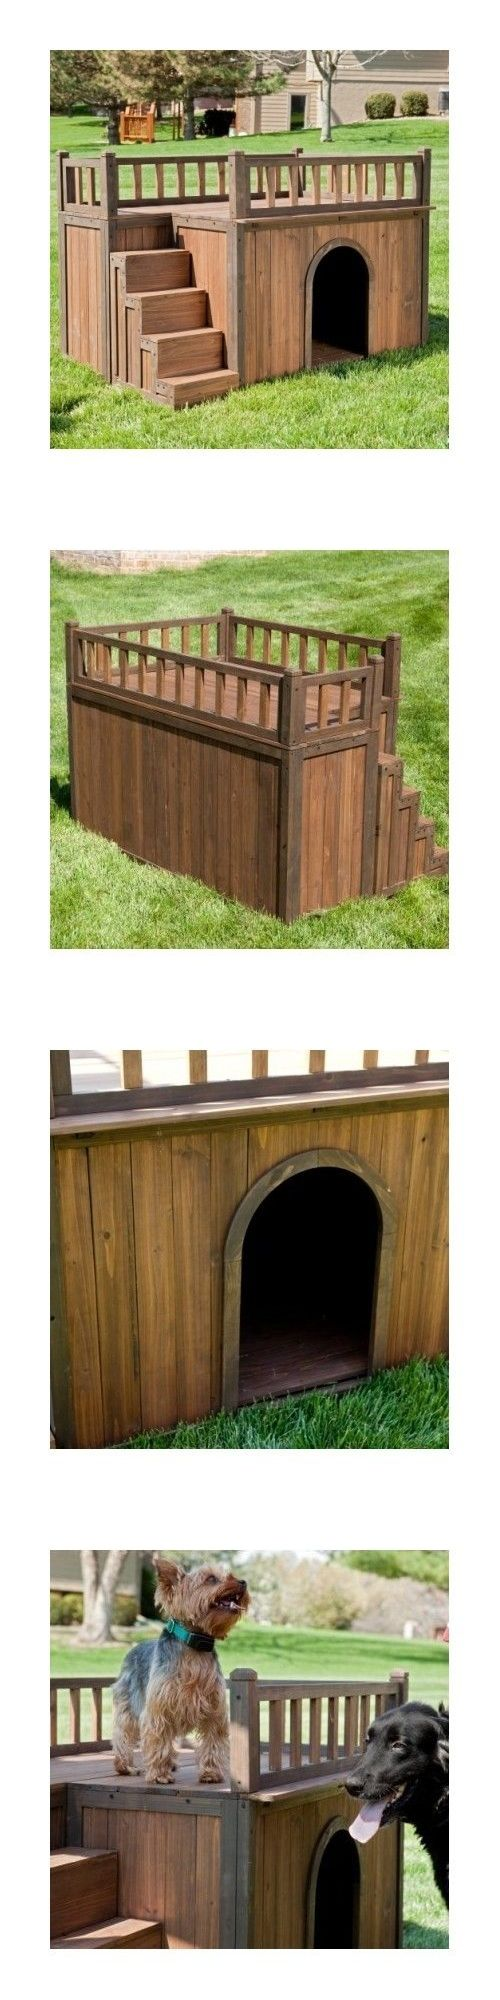 Rubber mats dog run - 17 Best Ideas About Dog Kennel Flooring On Pinterest Small Dog House Outdoor Dog Kennels And Dog Kennels